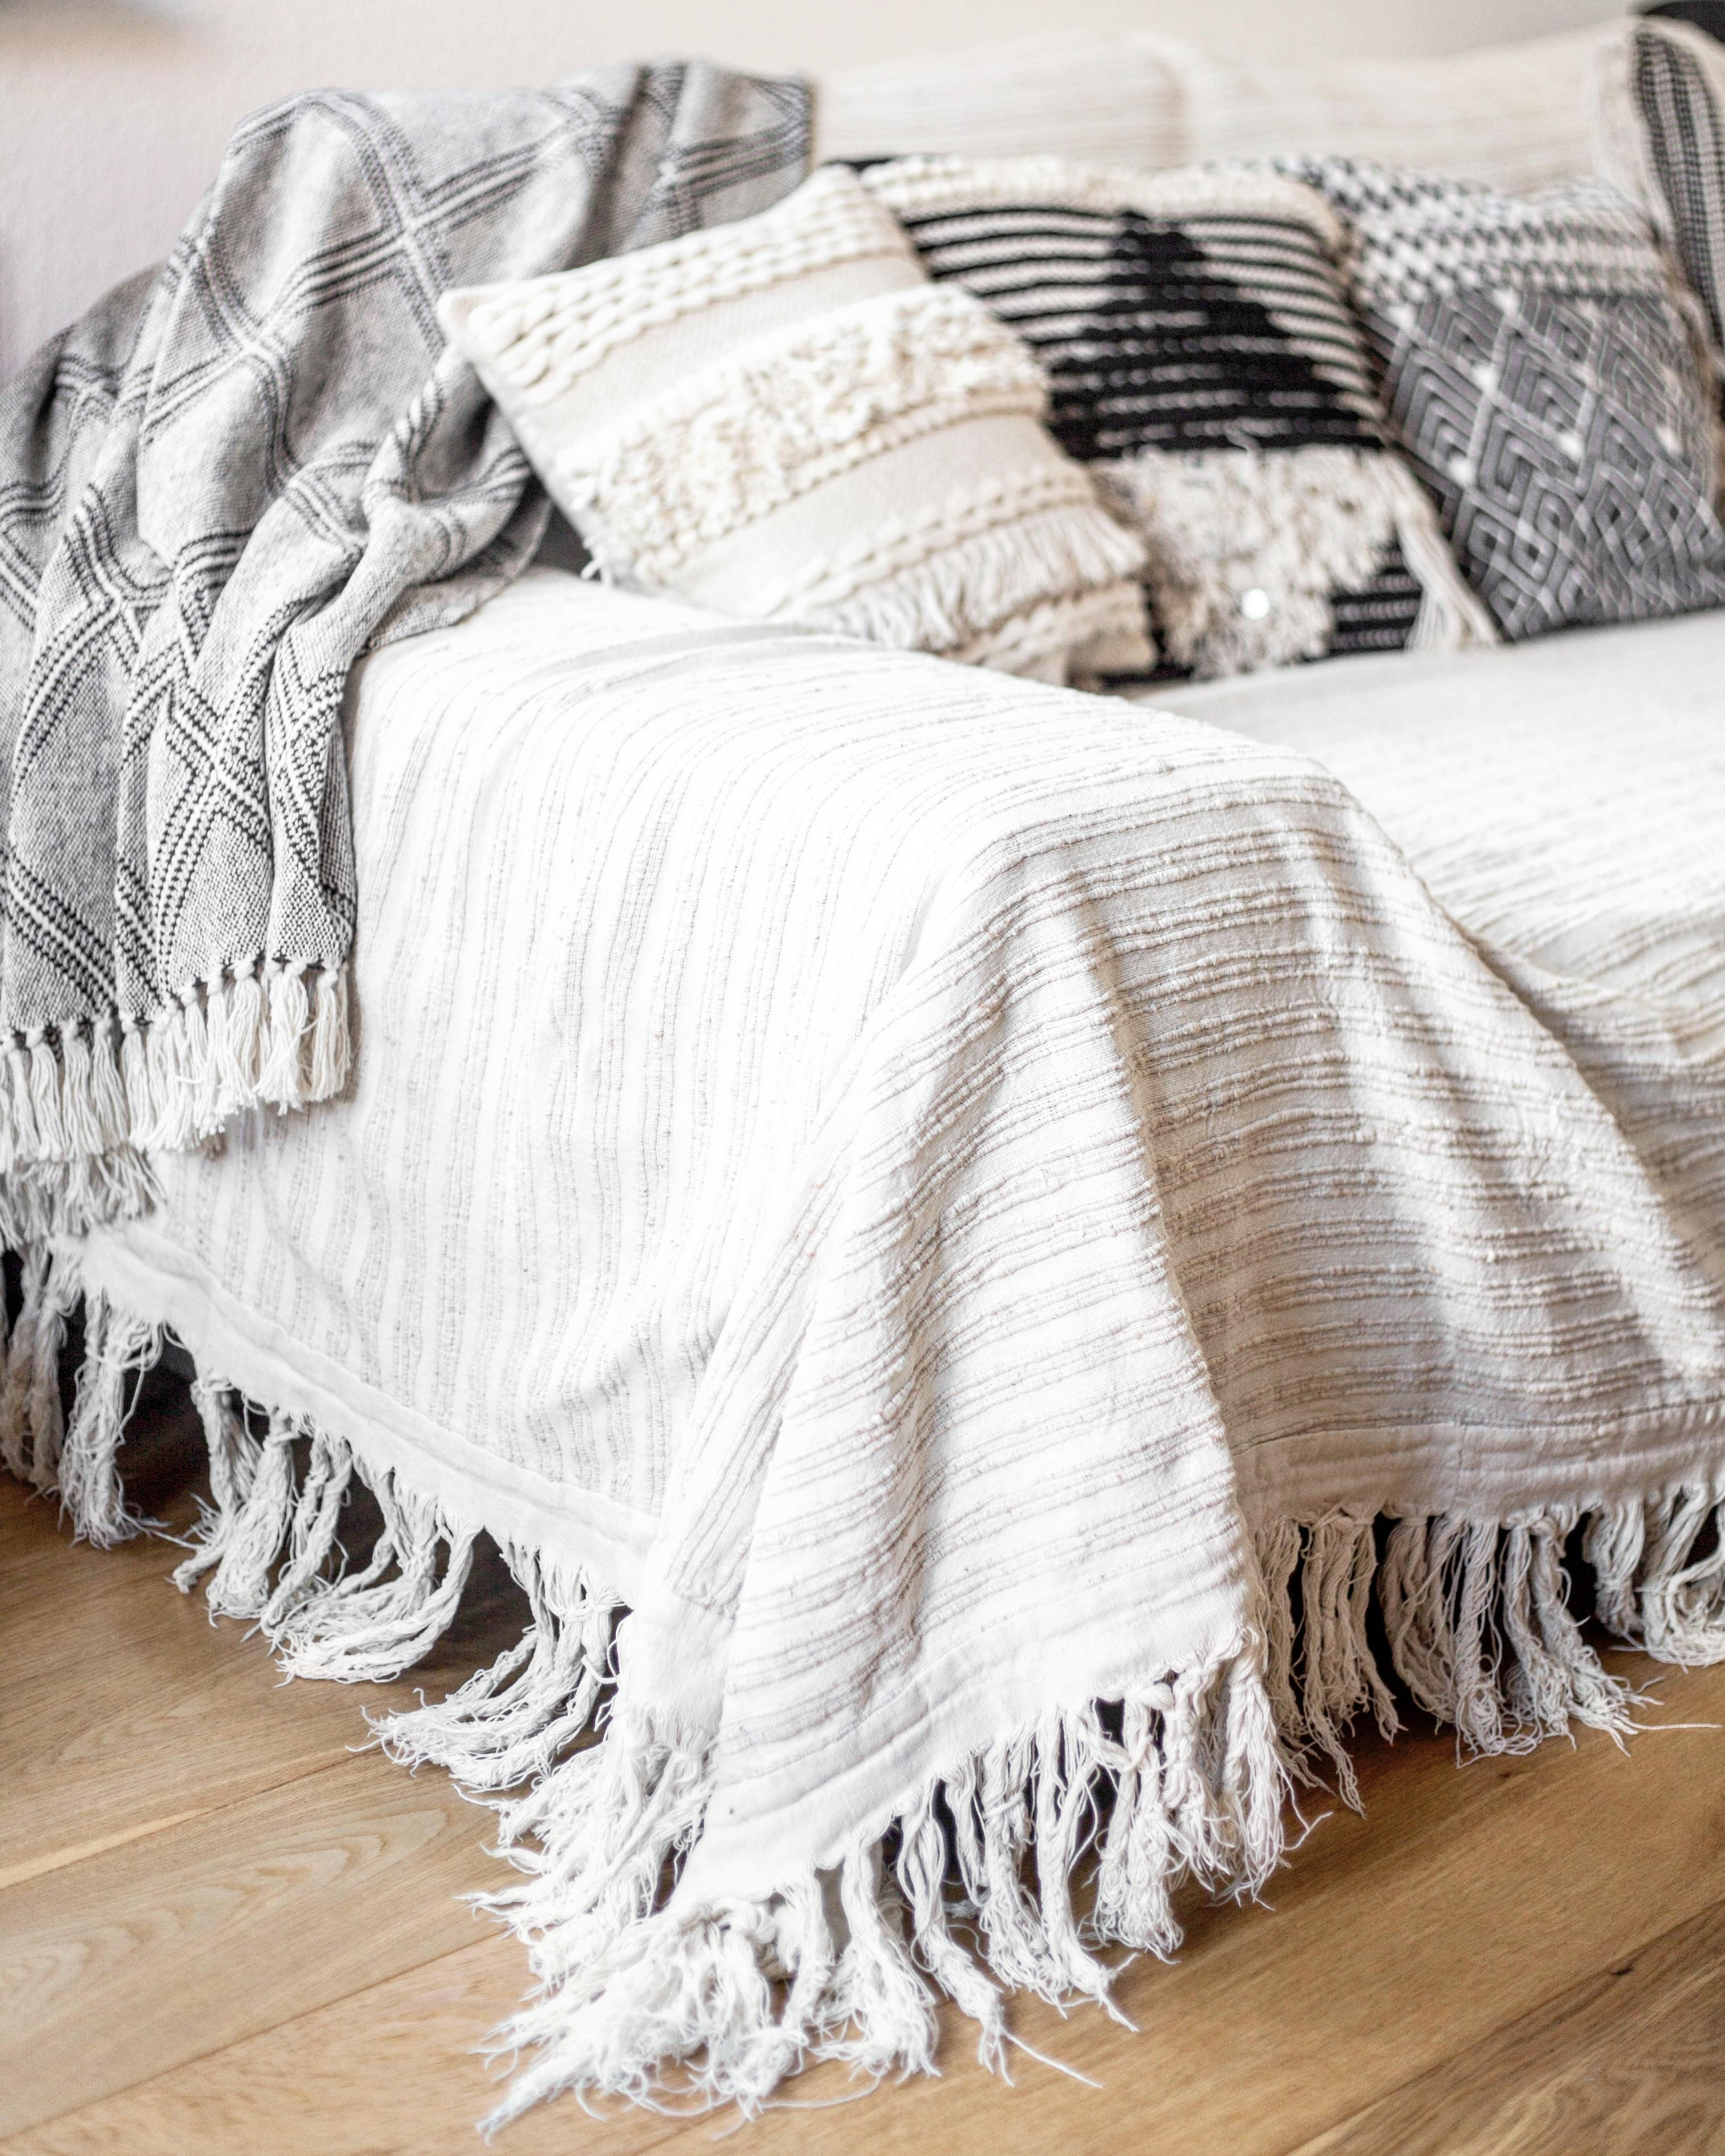 #couchliebt #scandi #scandistyle #hygge #cosyhome